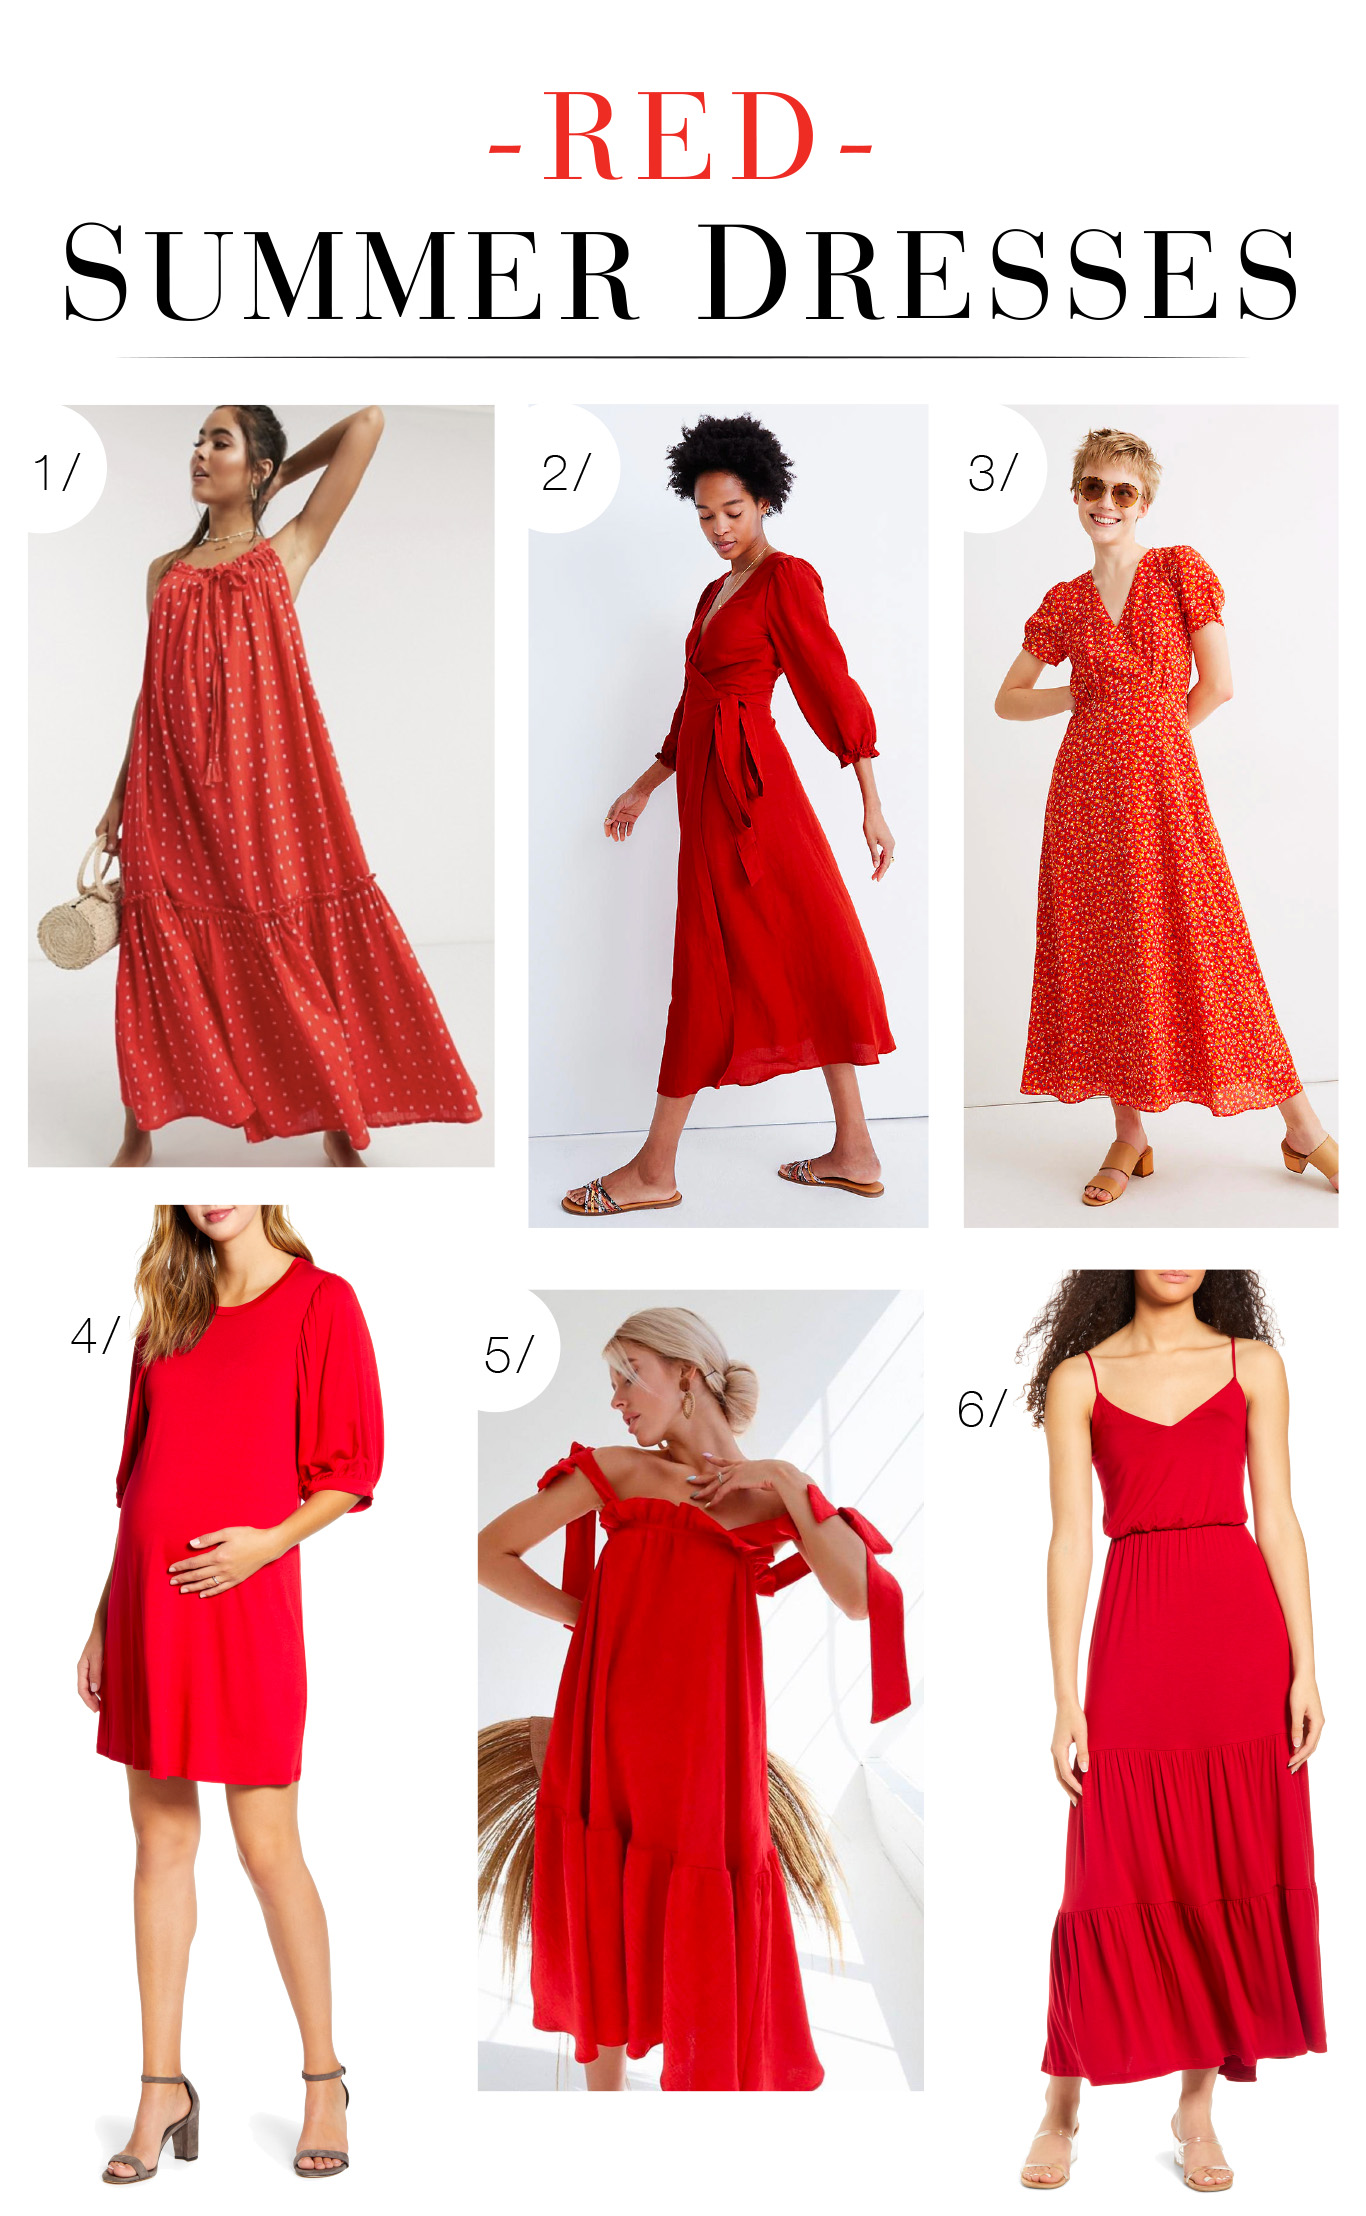 Red dresses are memorable, fun, sexy & gorgeous. We found the best red maxi dresses w/ special elements: pretty ties, flattering cuts & flirty volume.